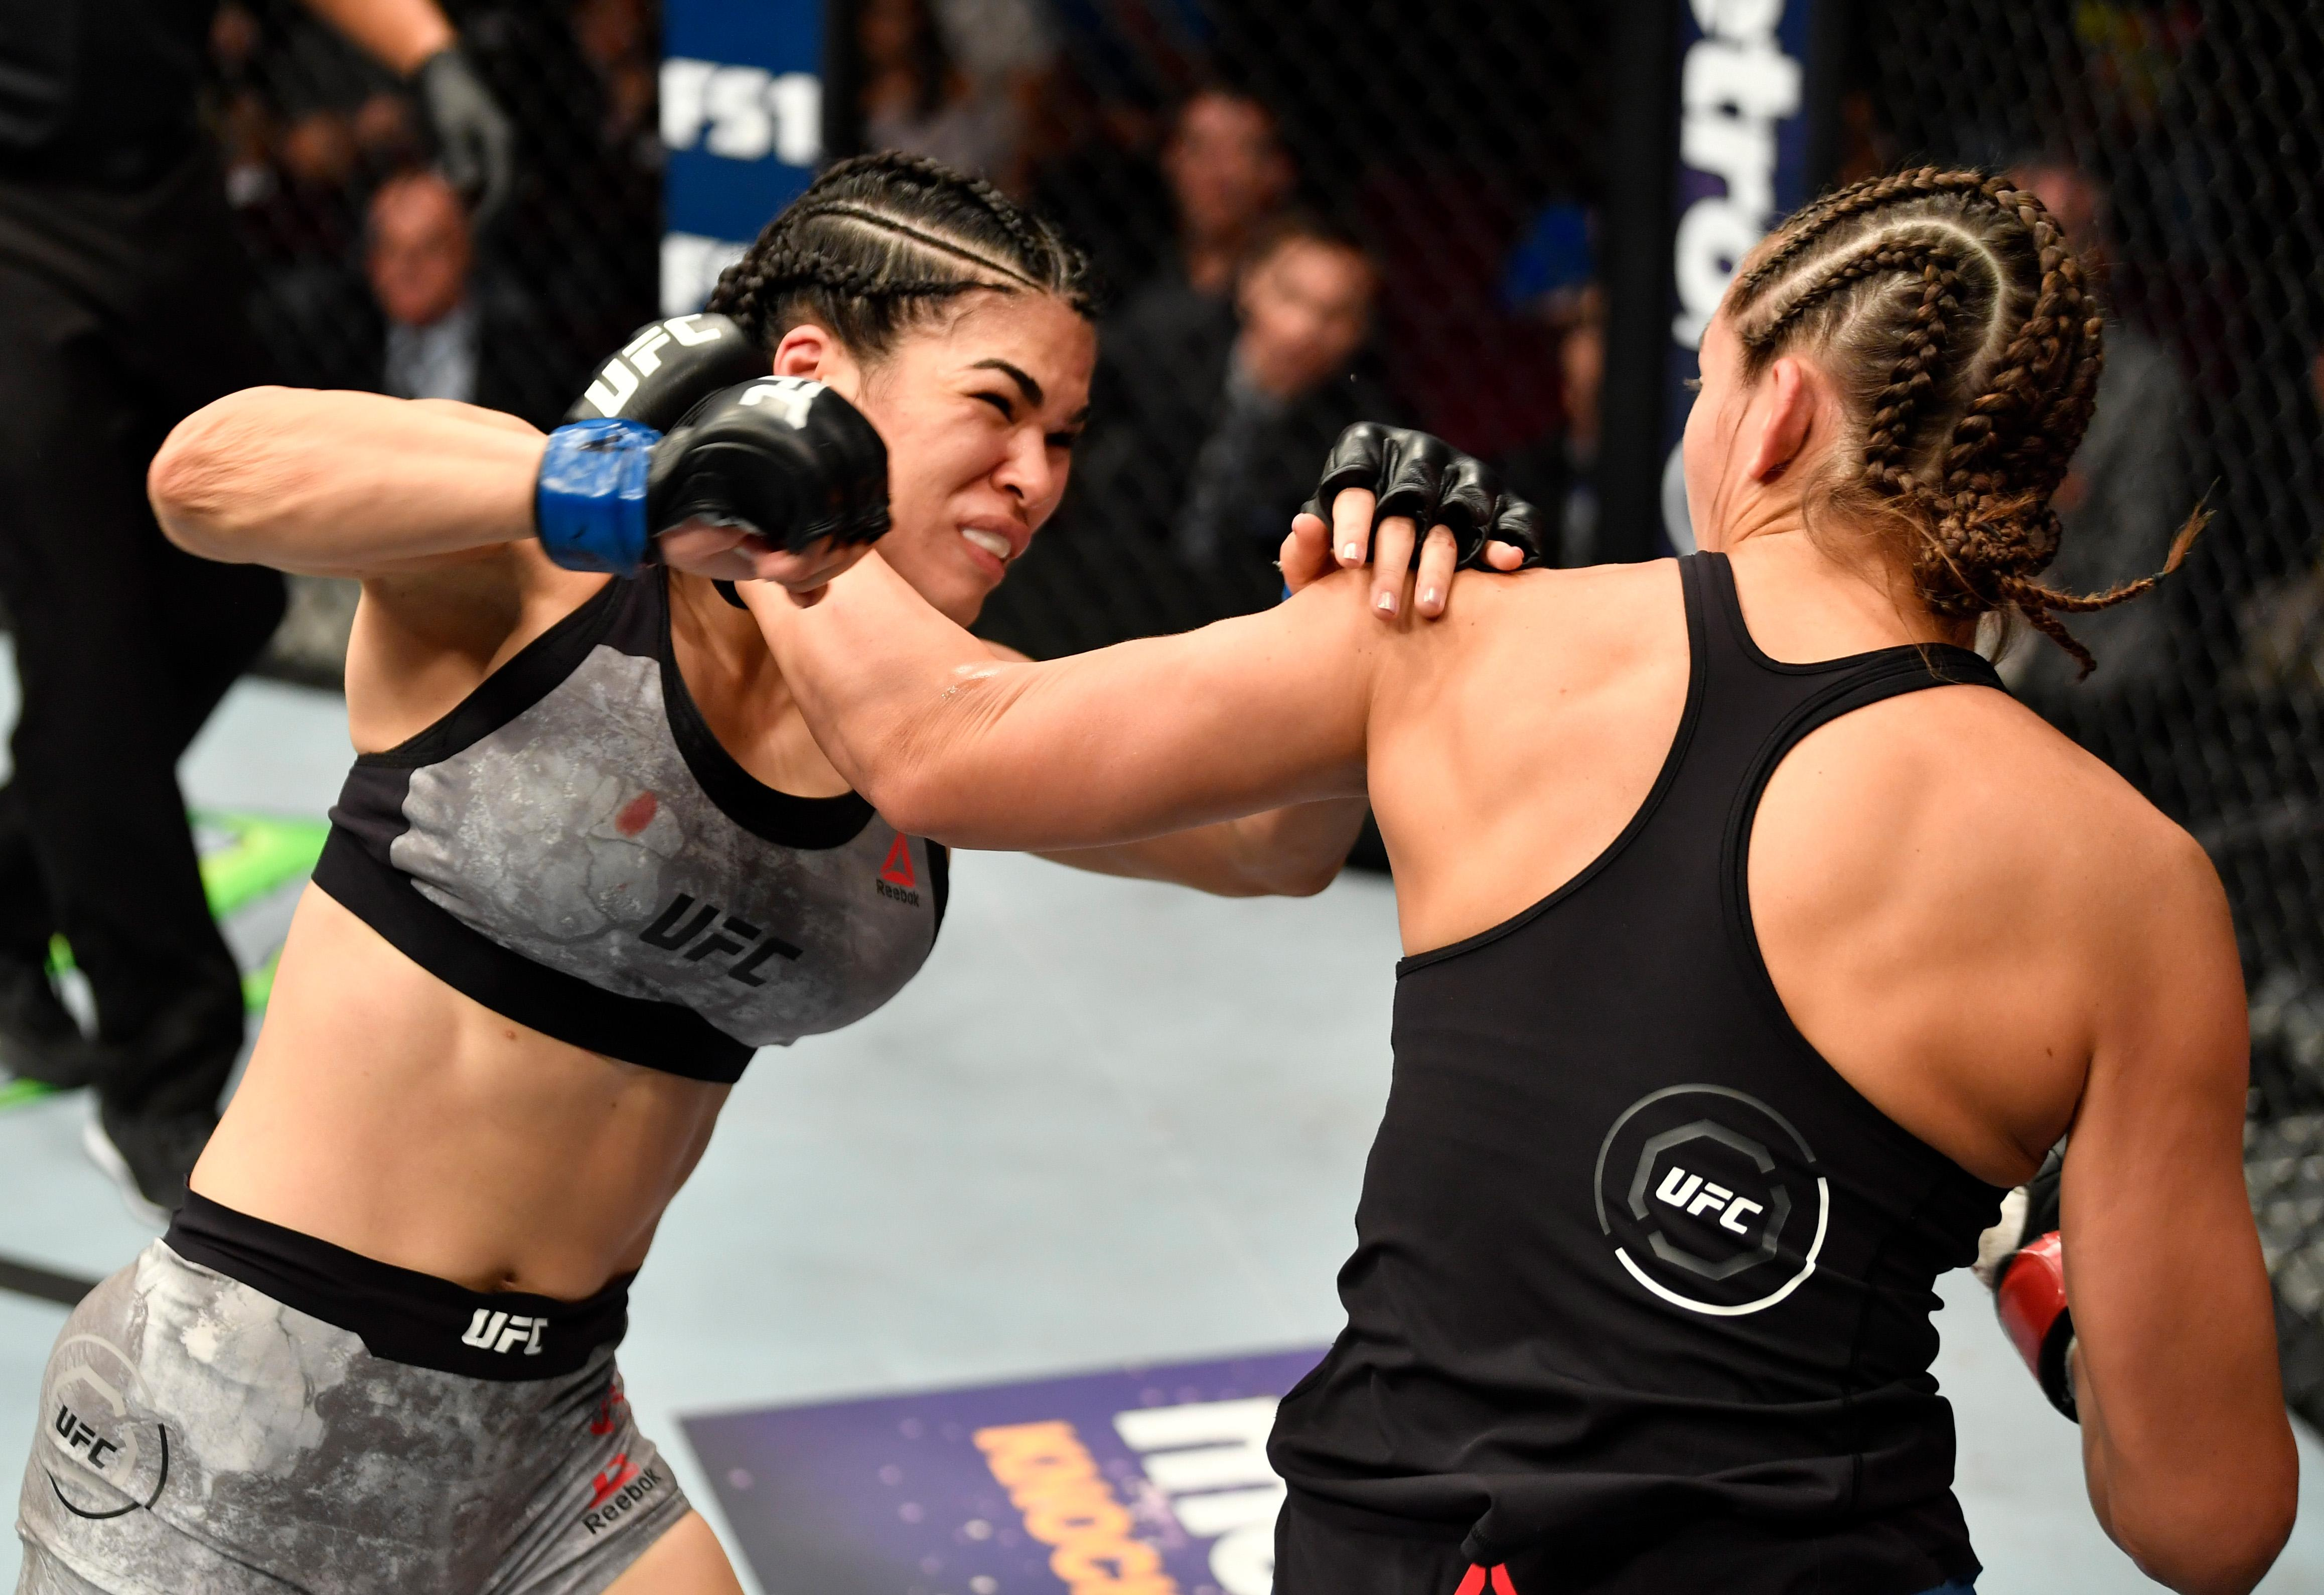 Rachael Ostovich has a record of 1-1 in the UFC